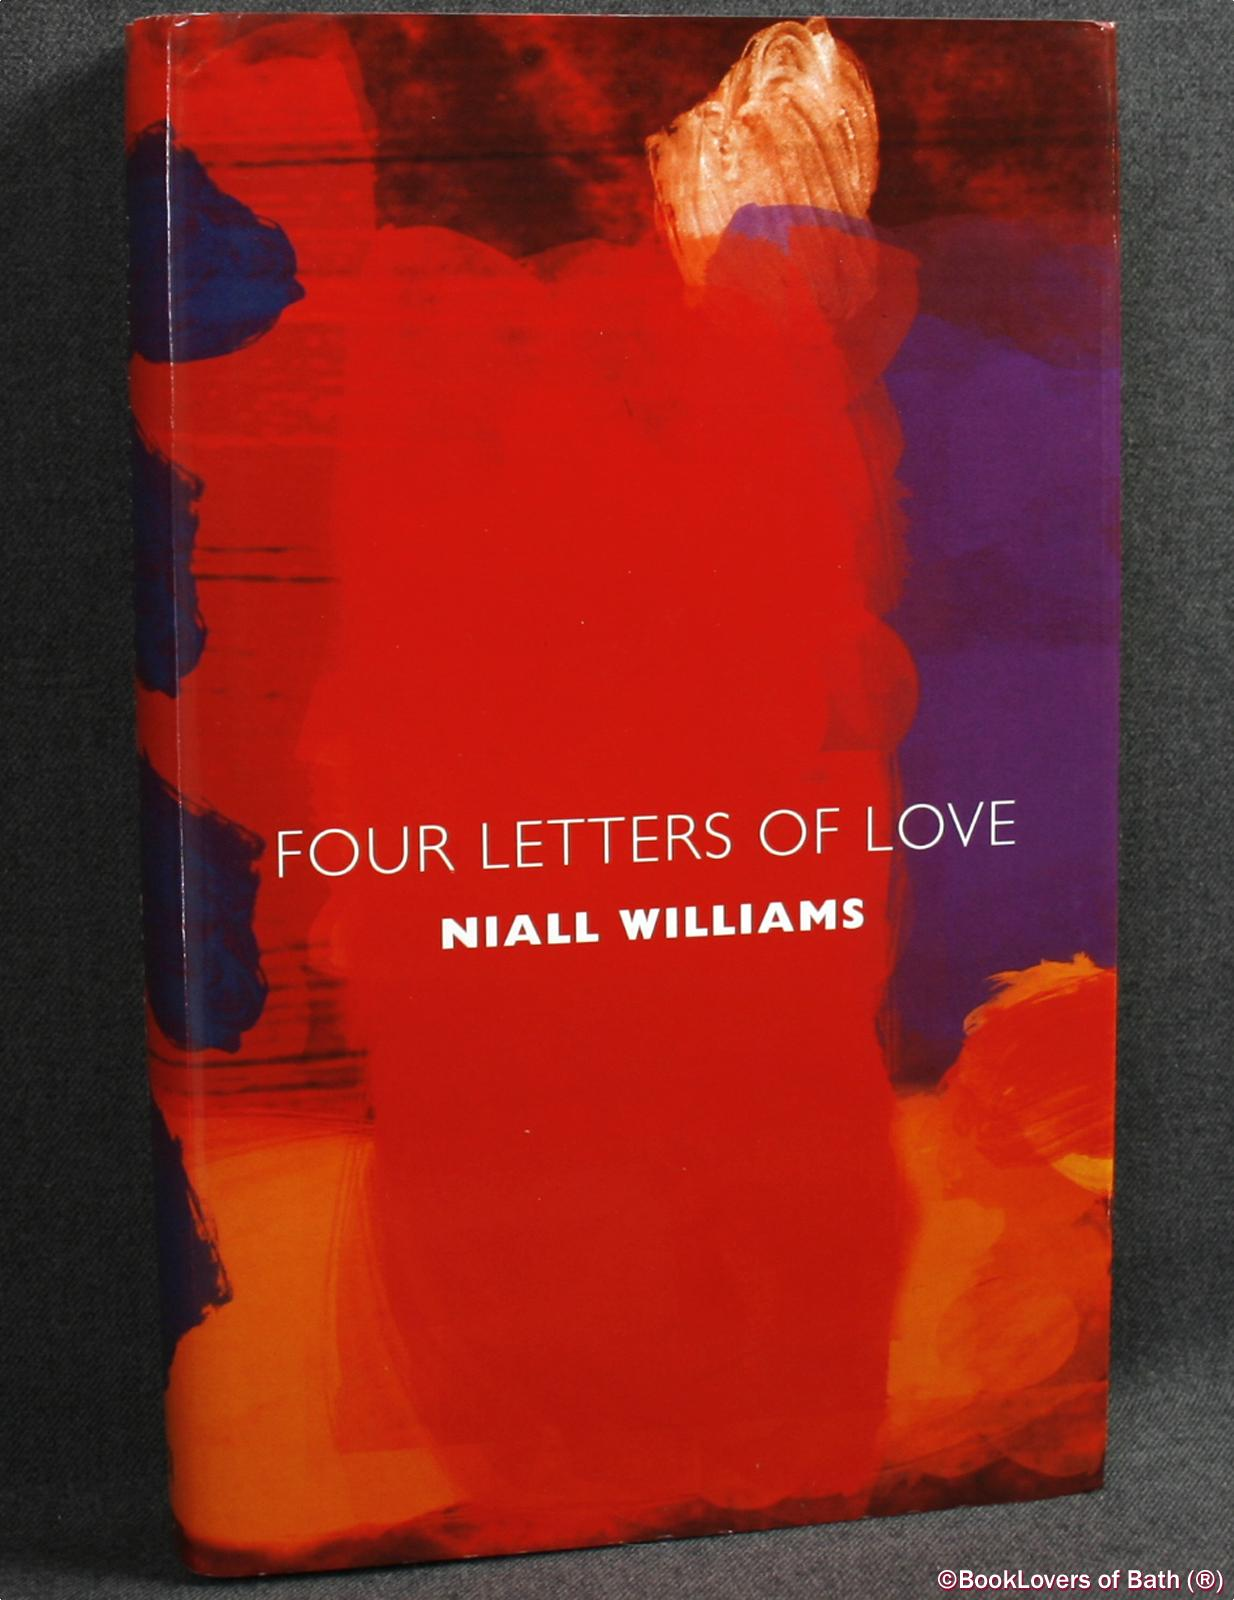 Four Letters of Love - Niall Williams